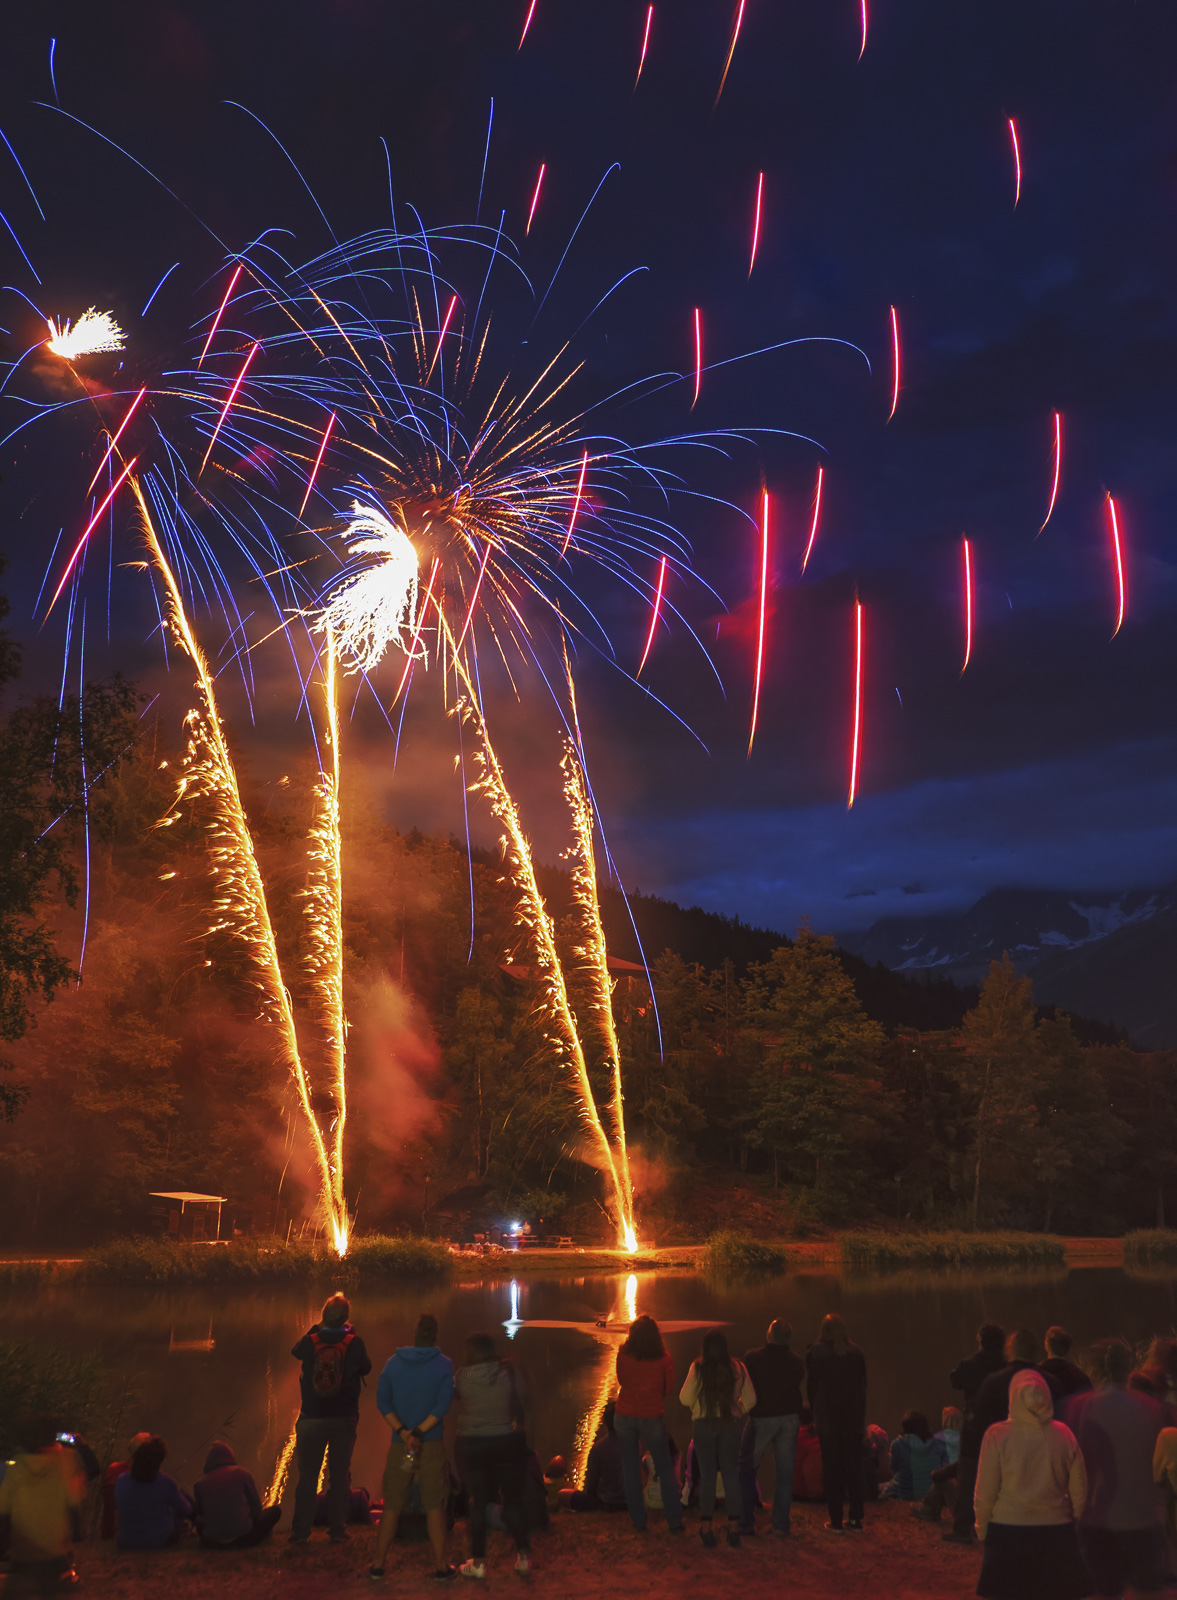 Fireworks 11, Les Houches, Chamonix, France, Bastille Day, town, village, epic, fantastic, displays, darkness, lake, aud, photo